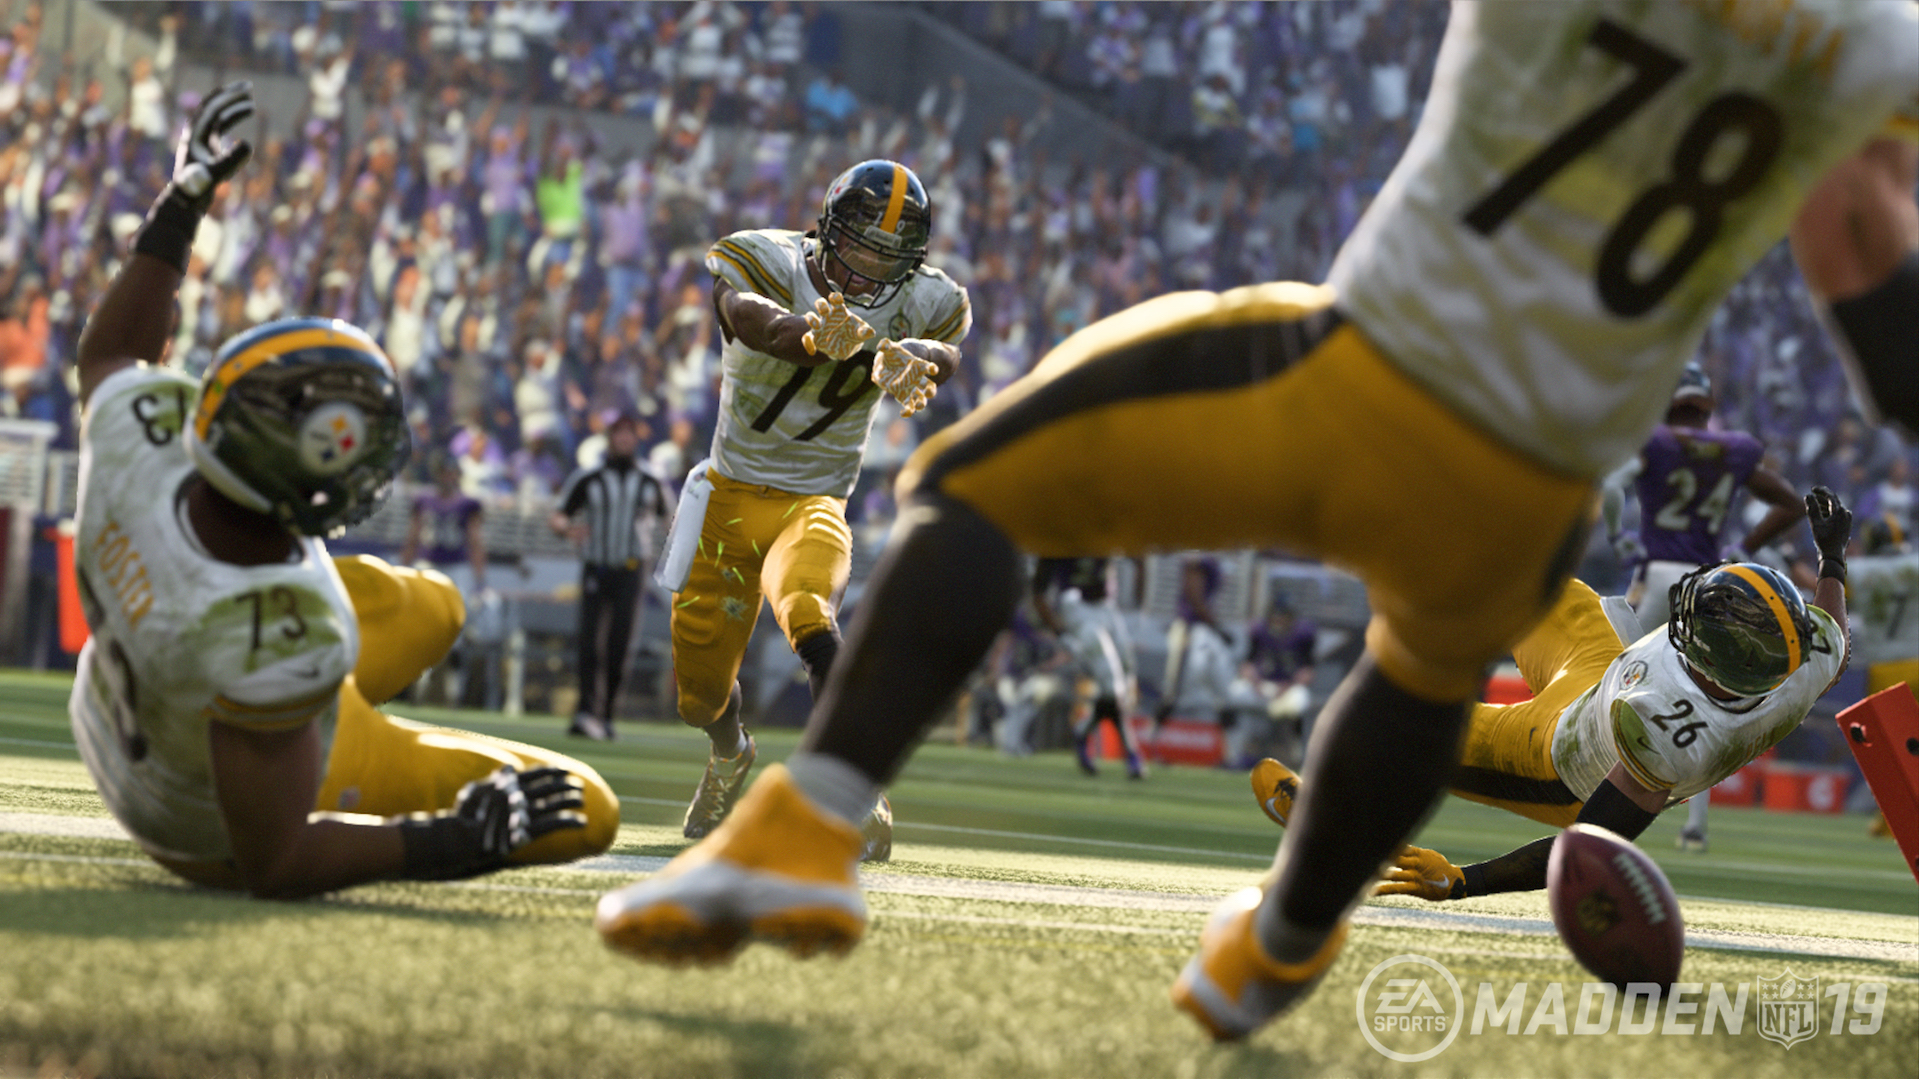 Madden NFL 19 Big Reveal – Everything We Know